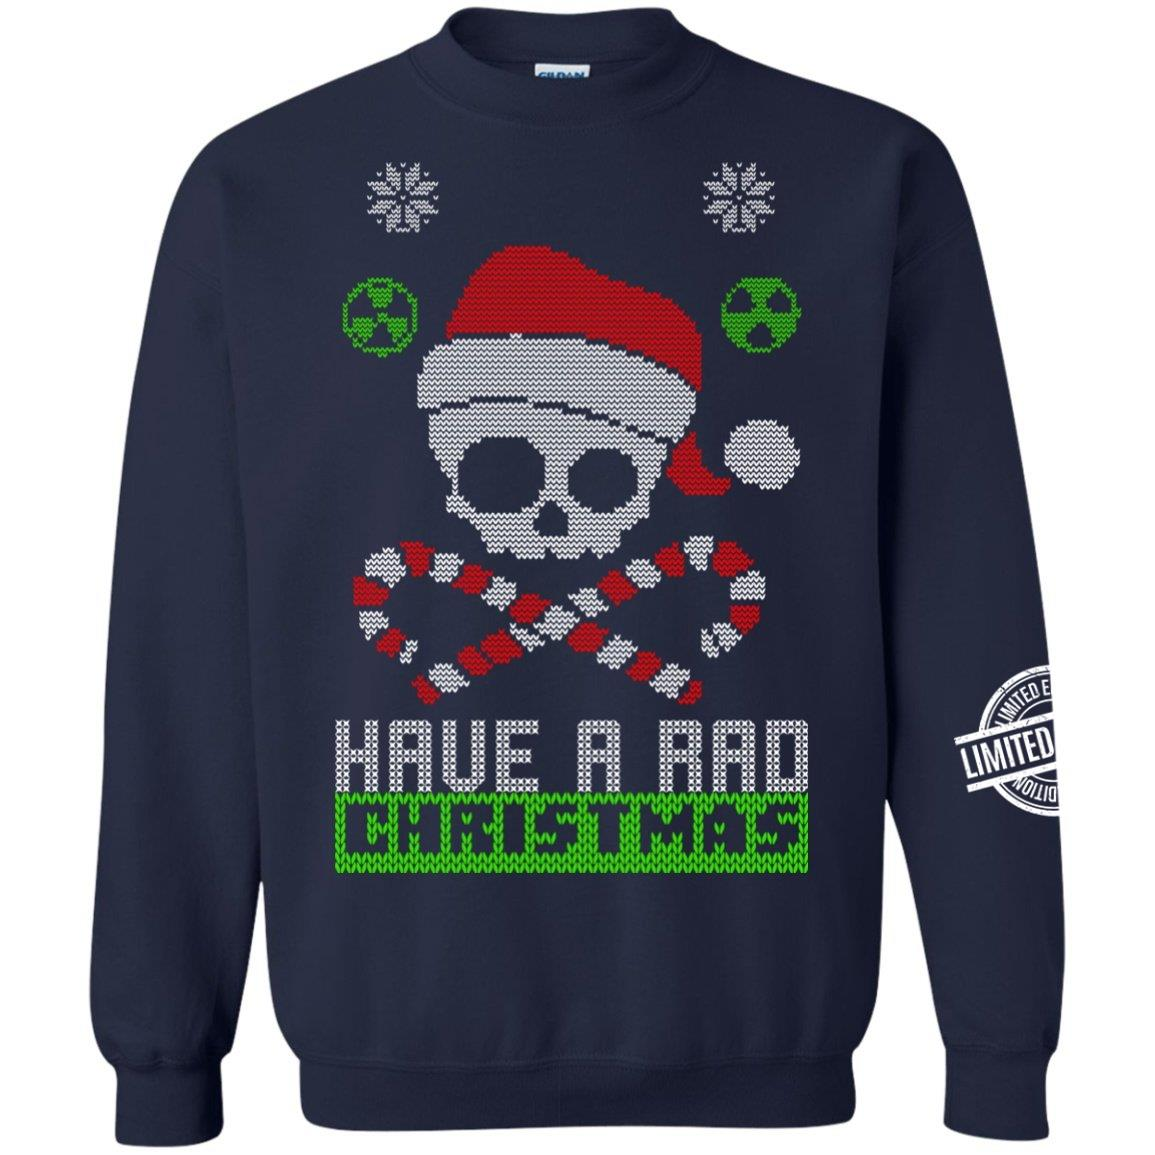 Have A Rad Christmas Shirt